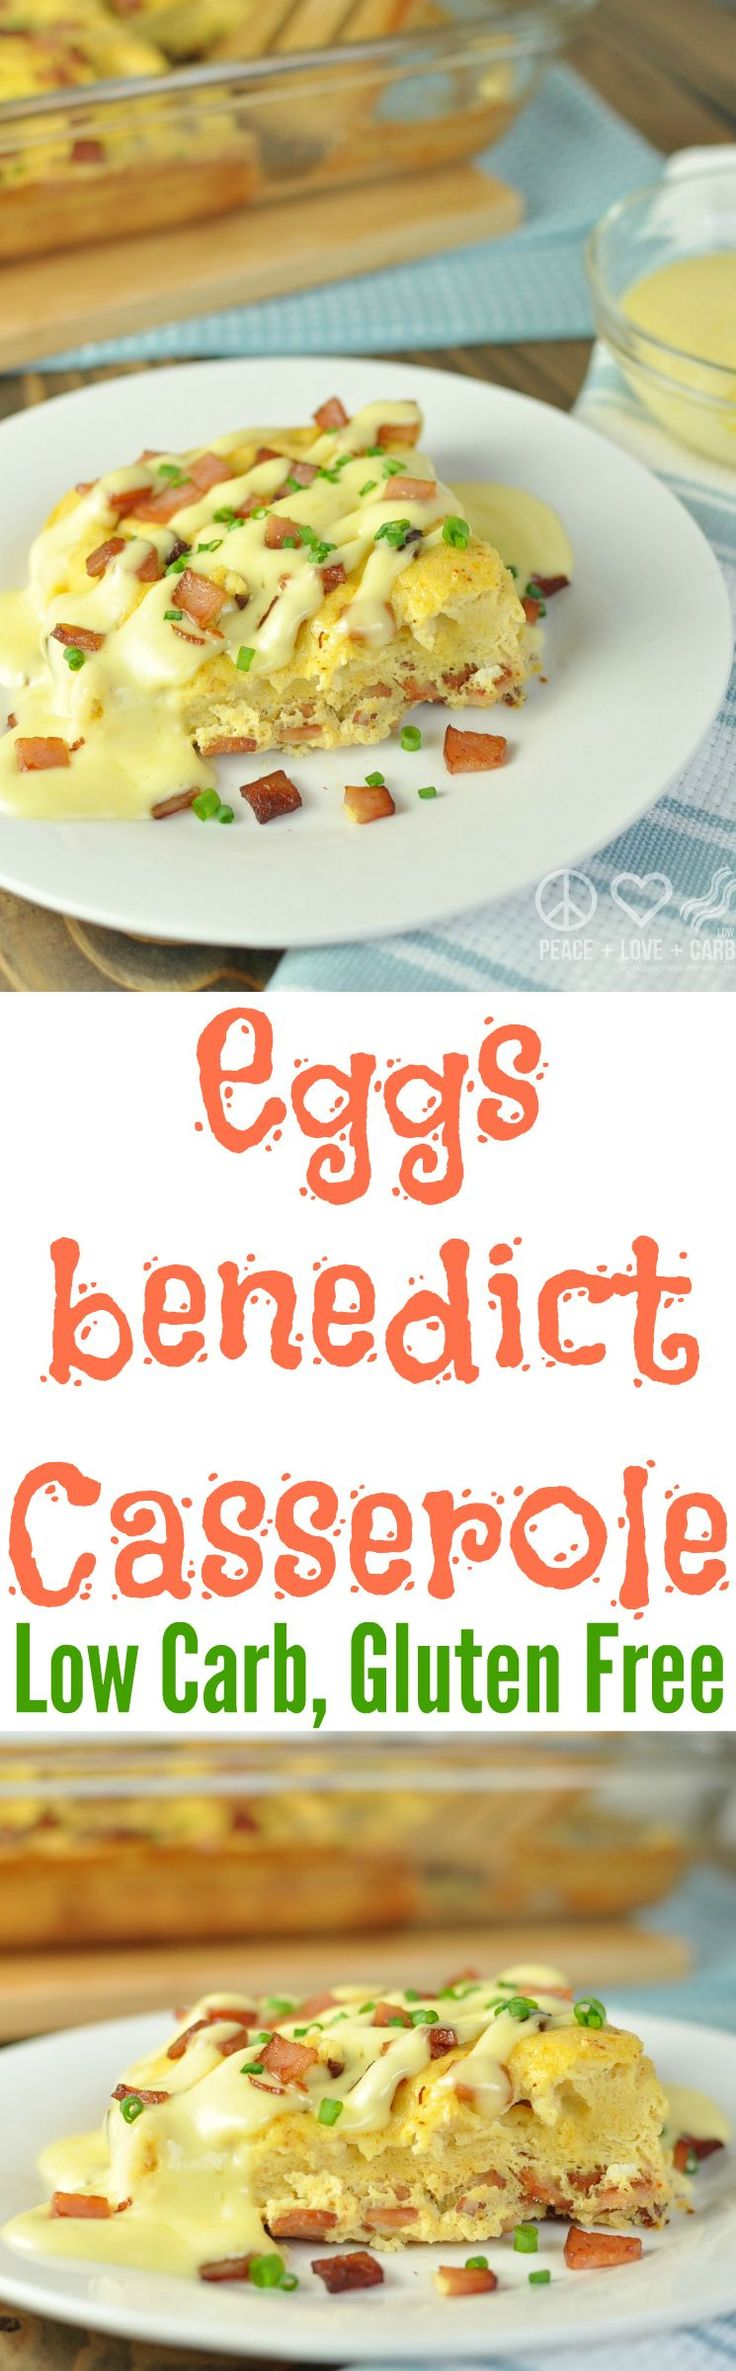 Eggs Benedict Breakfast Casserole - Low Carb, Gluten Free | Peace Love and Low Carb | peaceloveandlowcarb.com